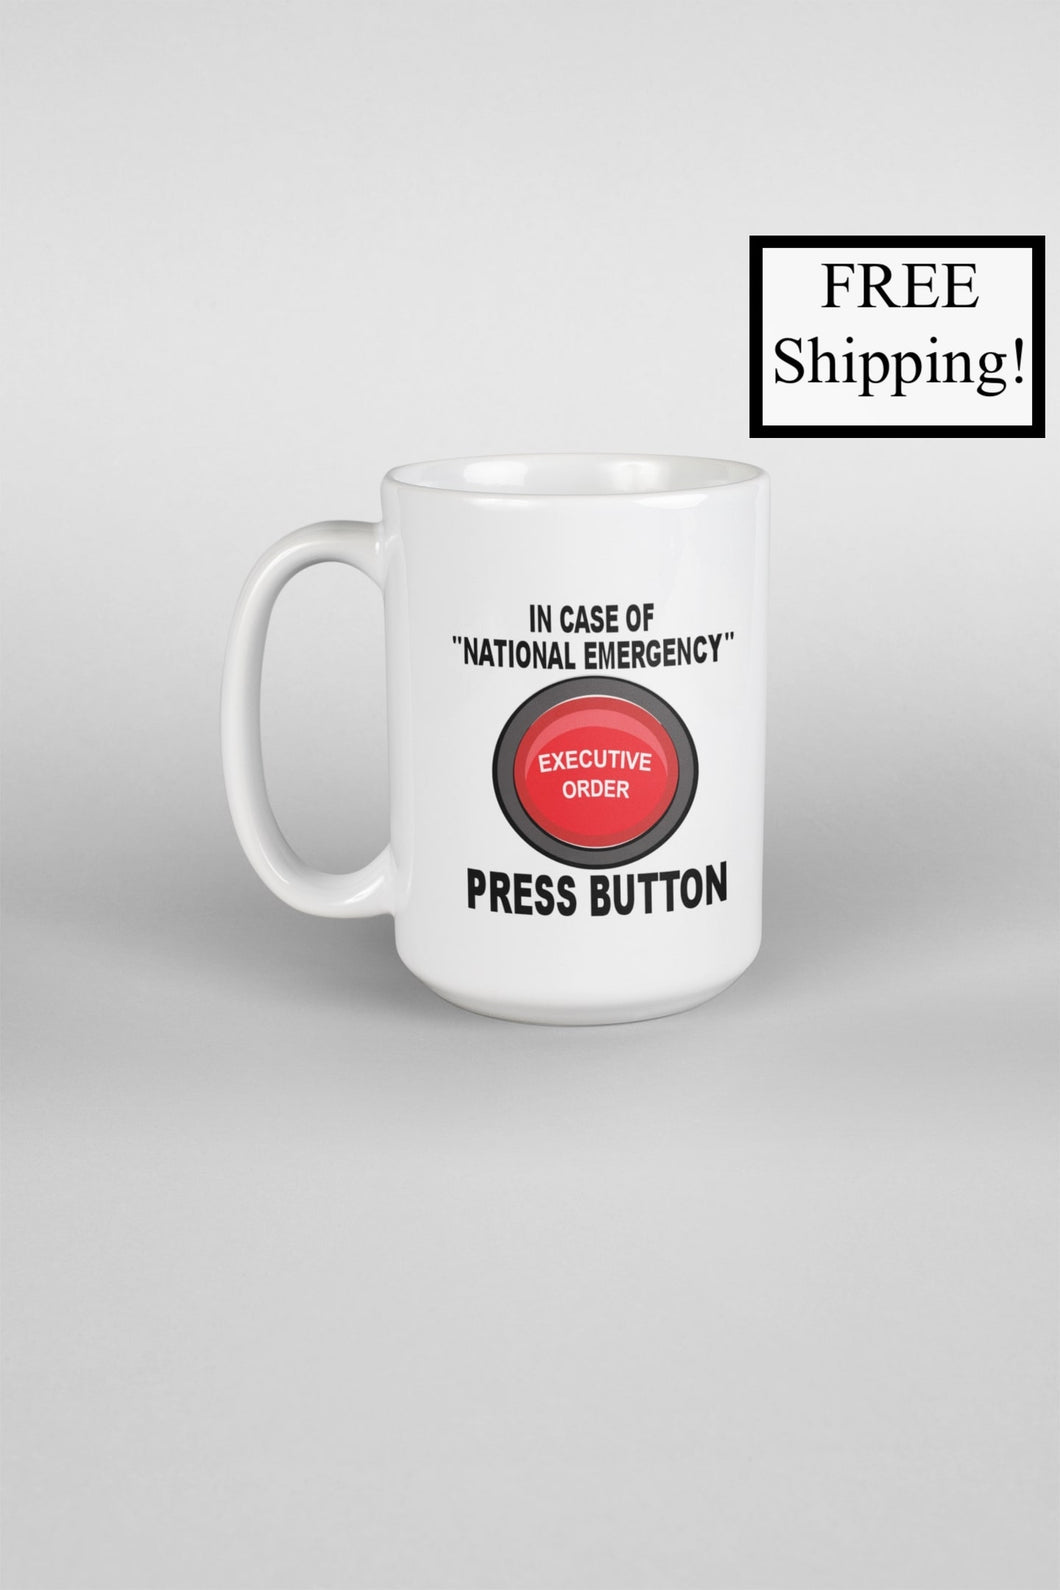 In Case of National Emergency Press Button 15oz Mug